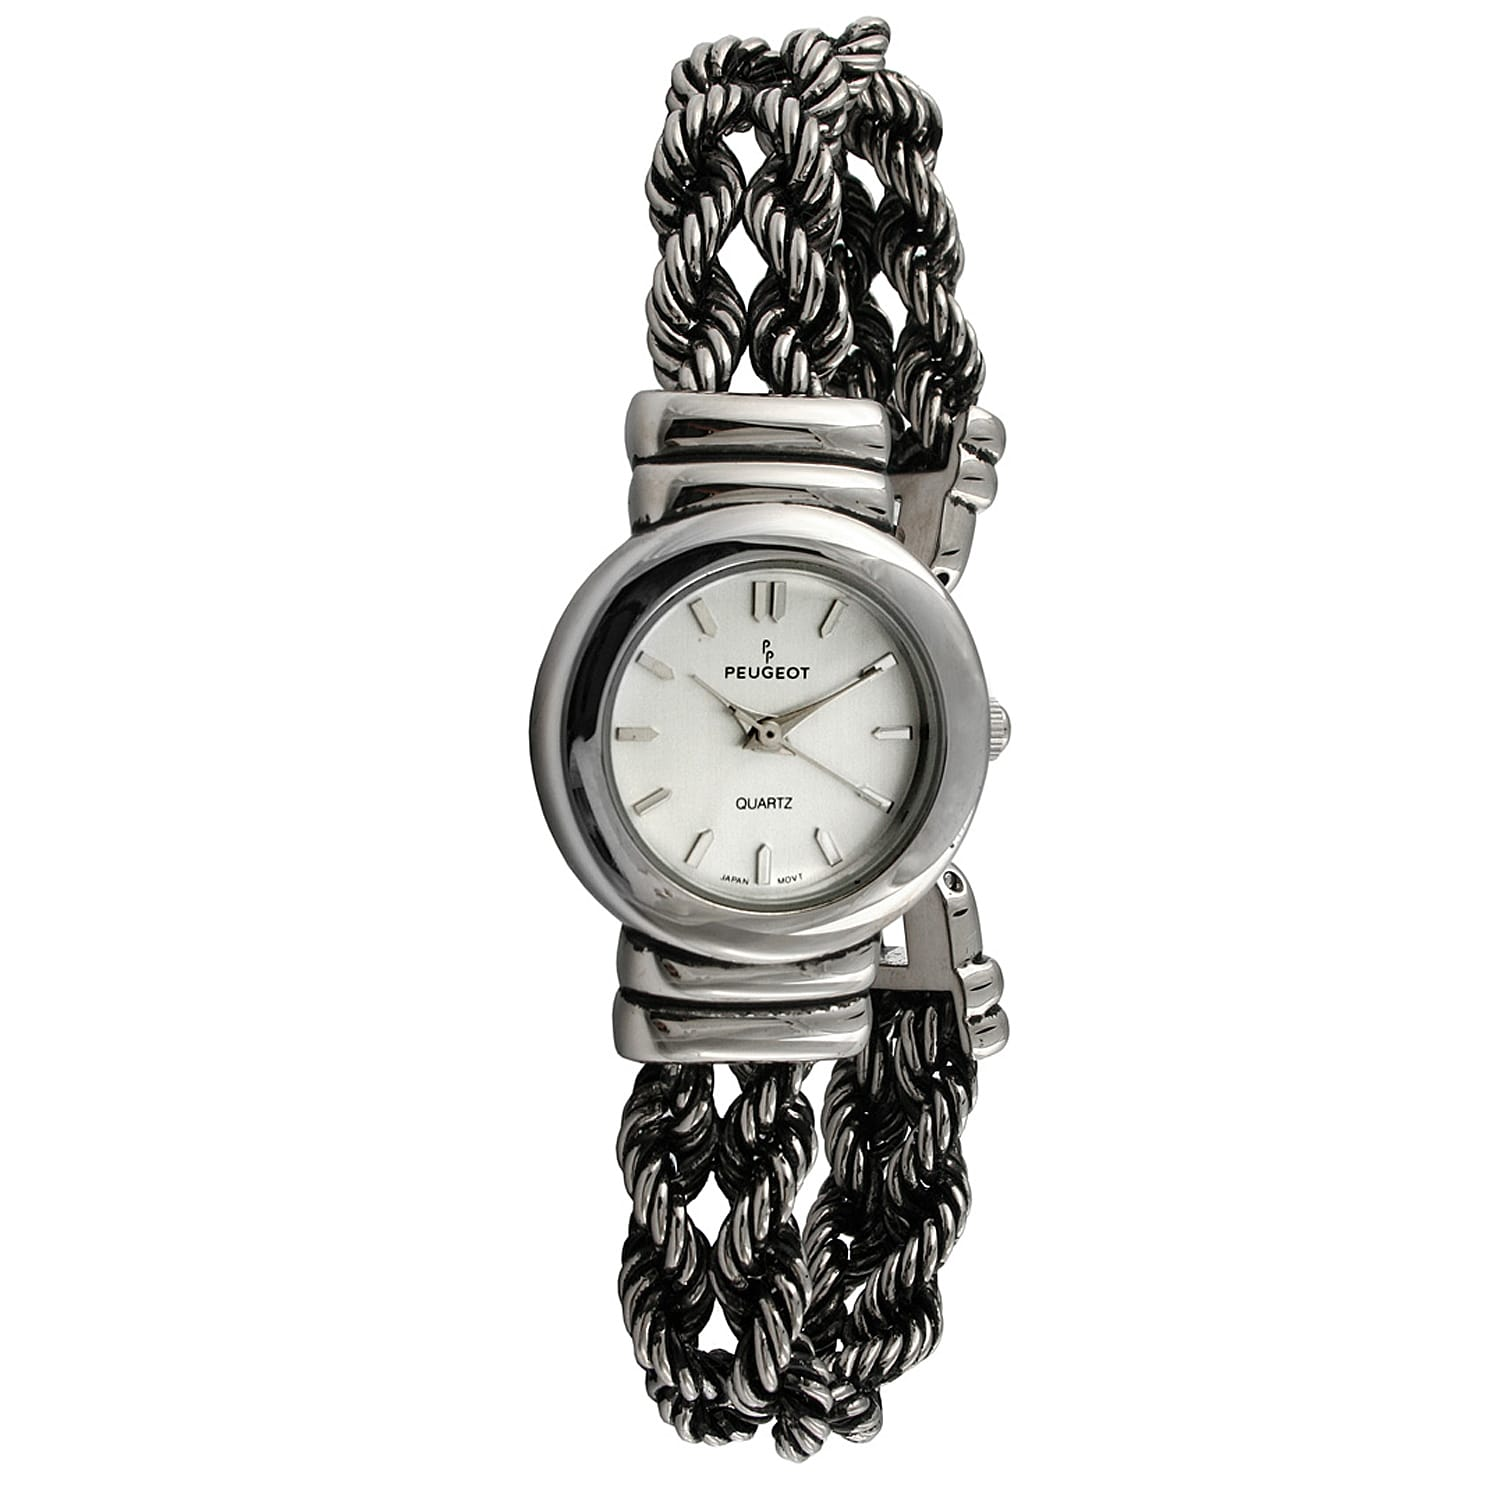 Peugeot Women's Antique Twice Braided Watch